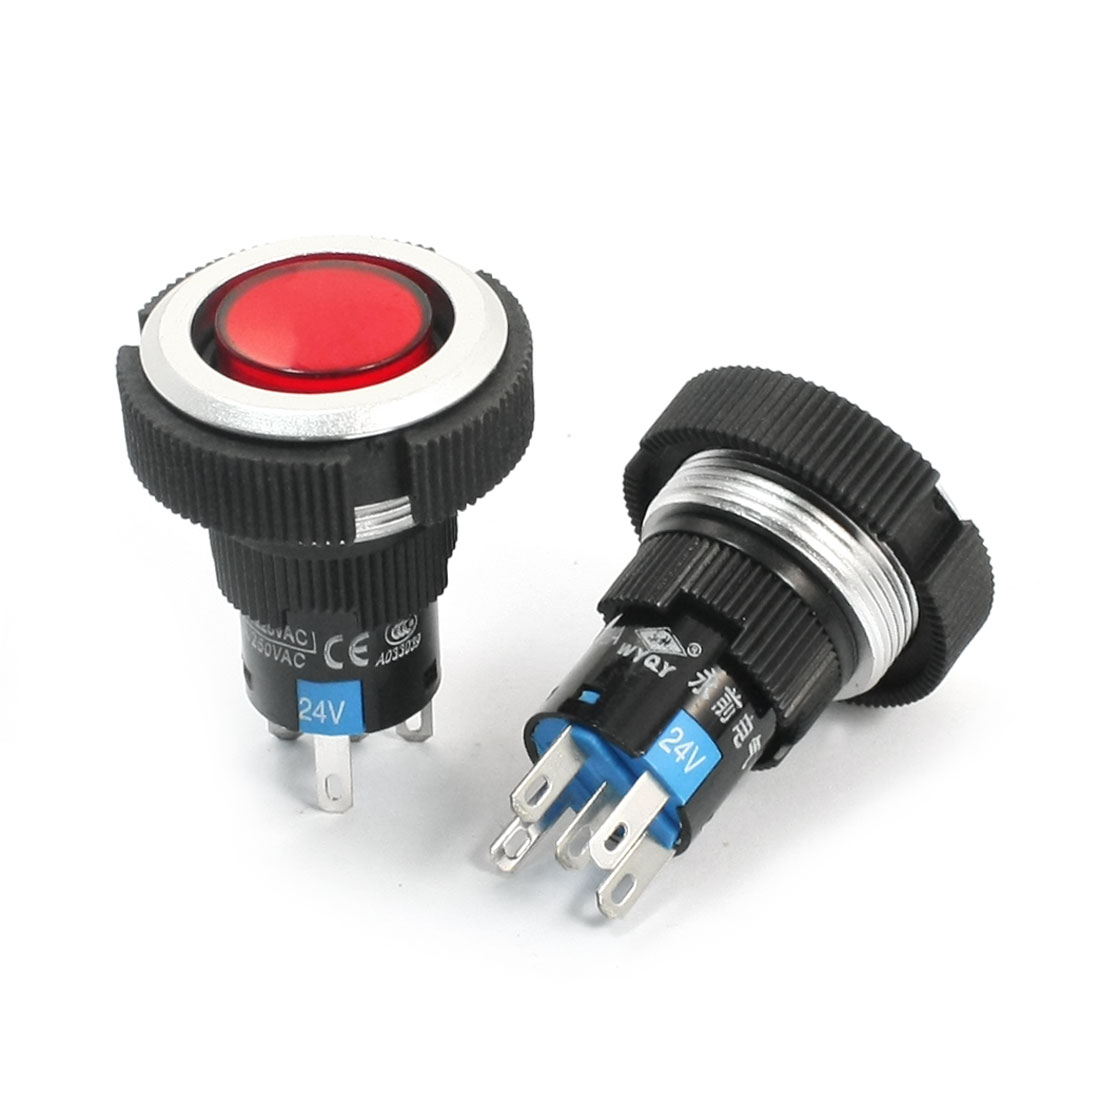 2Pcs 24V 22mm Thread Panel Mount SPDT 5Pin 1NO 1NC Momentary Red Pilot Lamp Plastic Push Button Switch